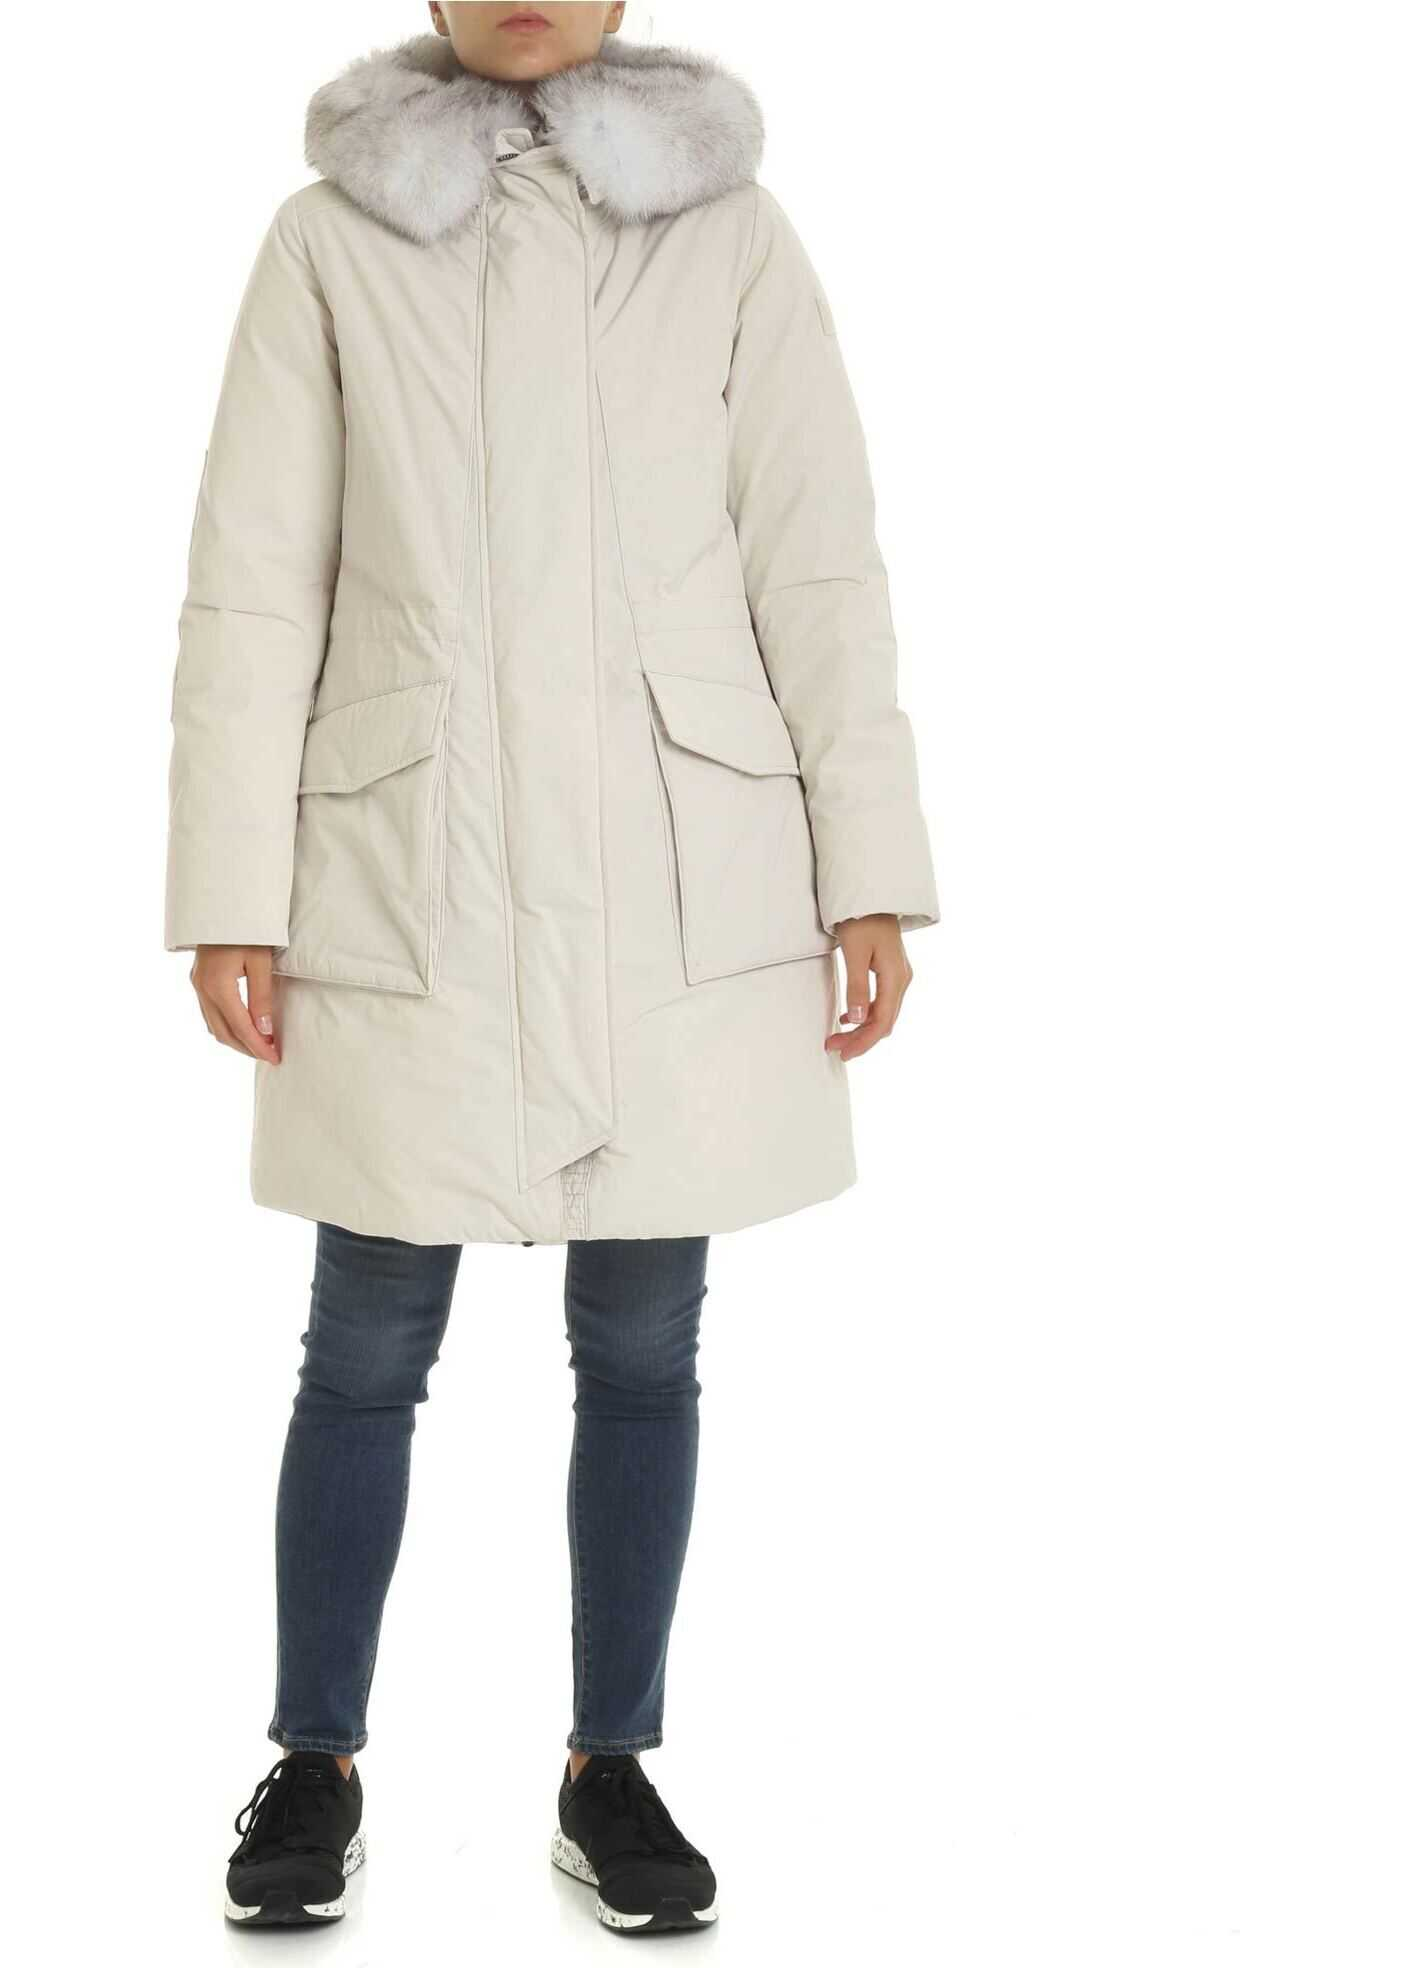 Military Parka Jacket In Ice Color thumbnail